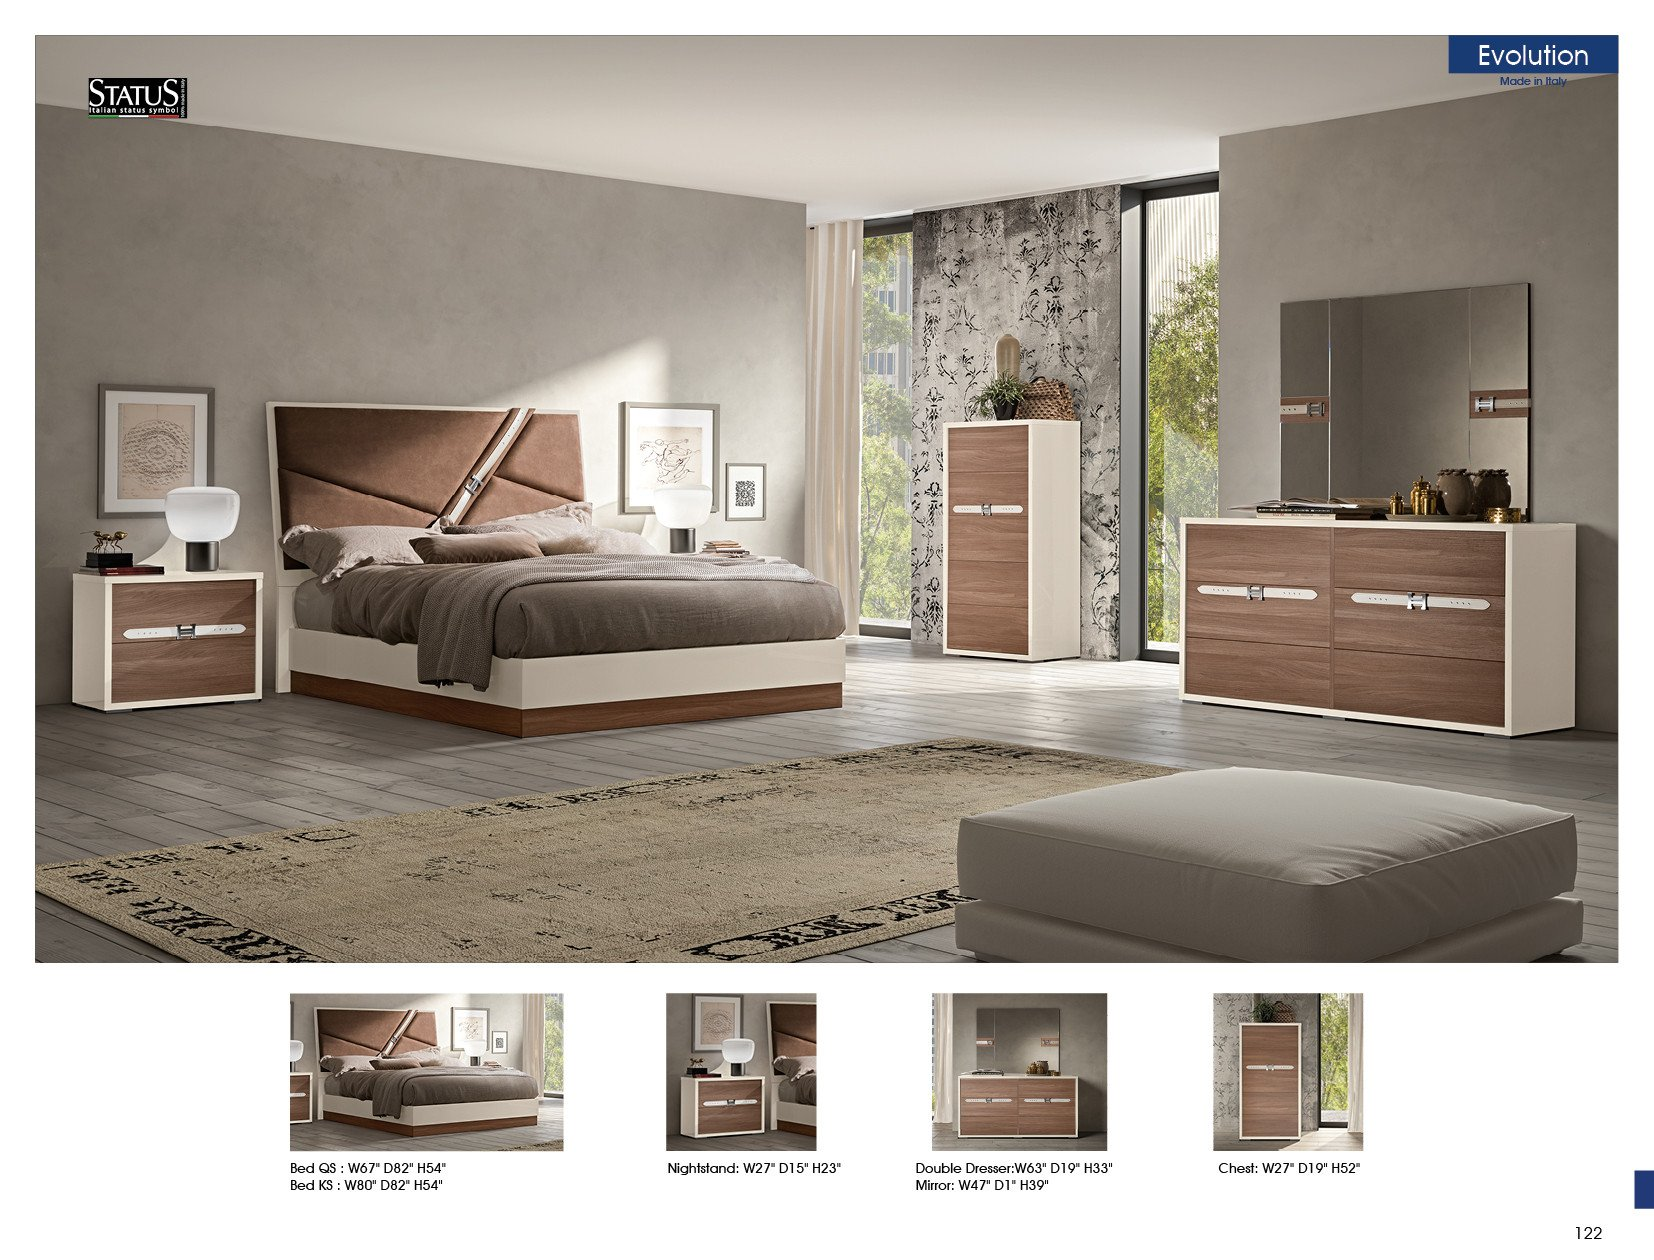 Italian Modern Bedroom Furniture Inspirational Evolution Bedroom Modern Bedrooms Bedroom Furniture